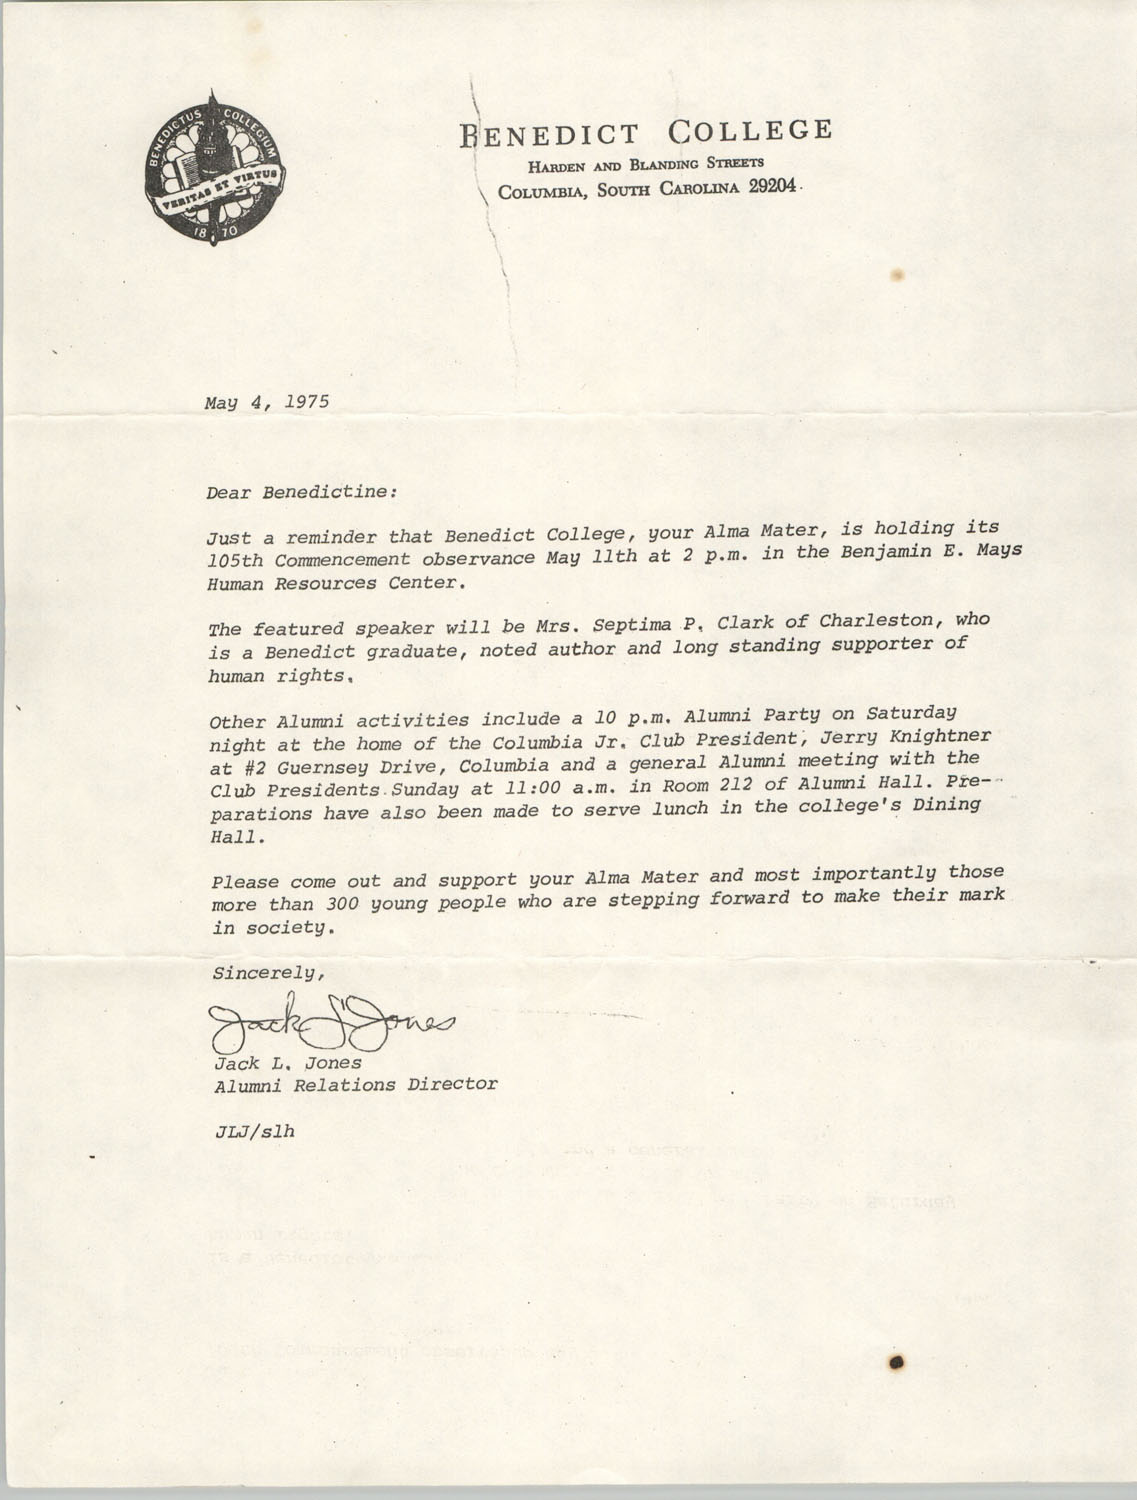 Letter from Jack L. Jones to Septima P. Clark, May 4, 1975